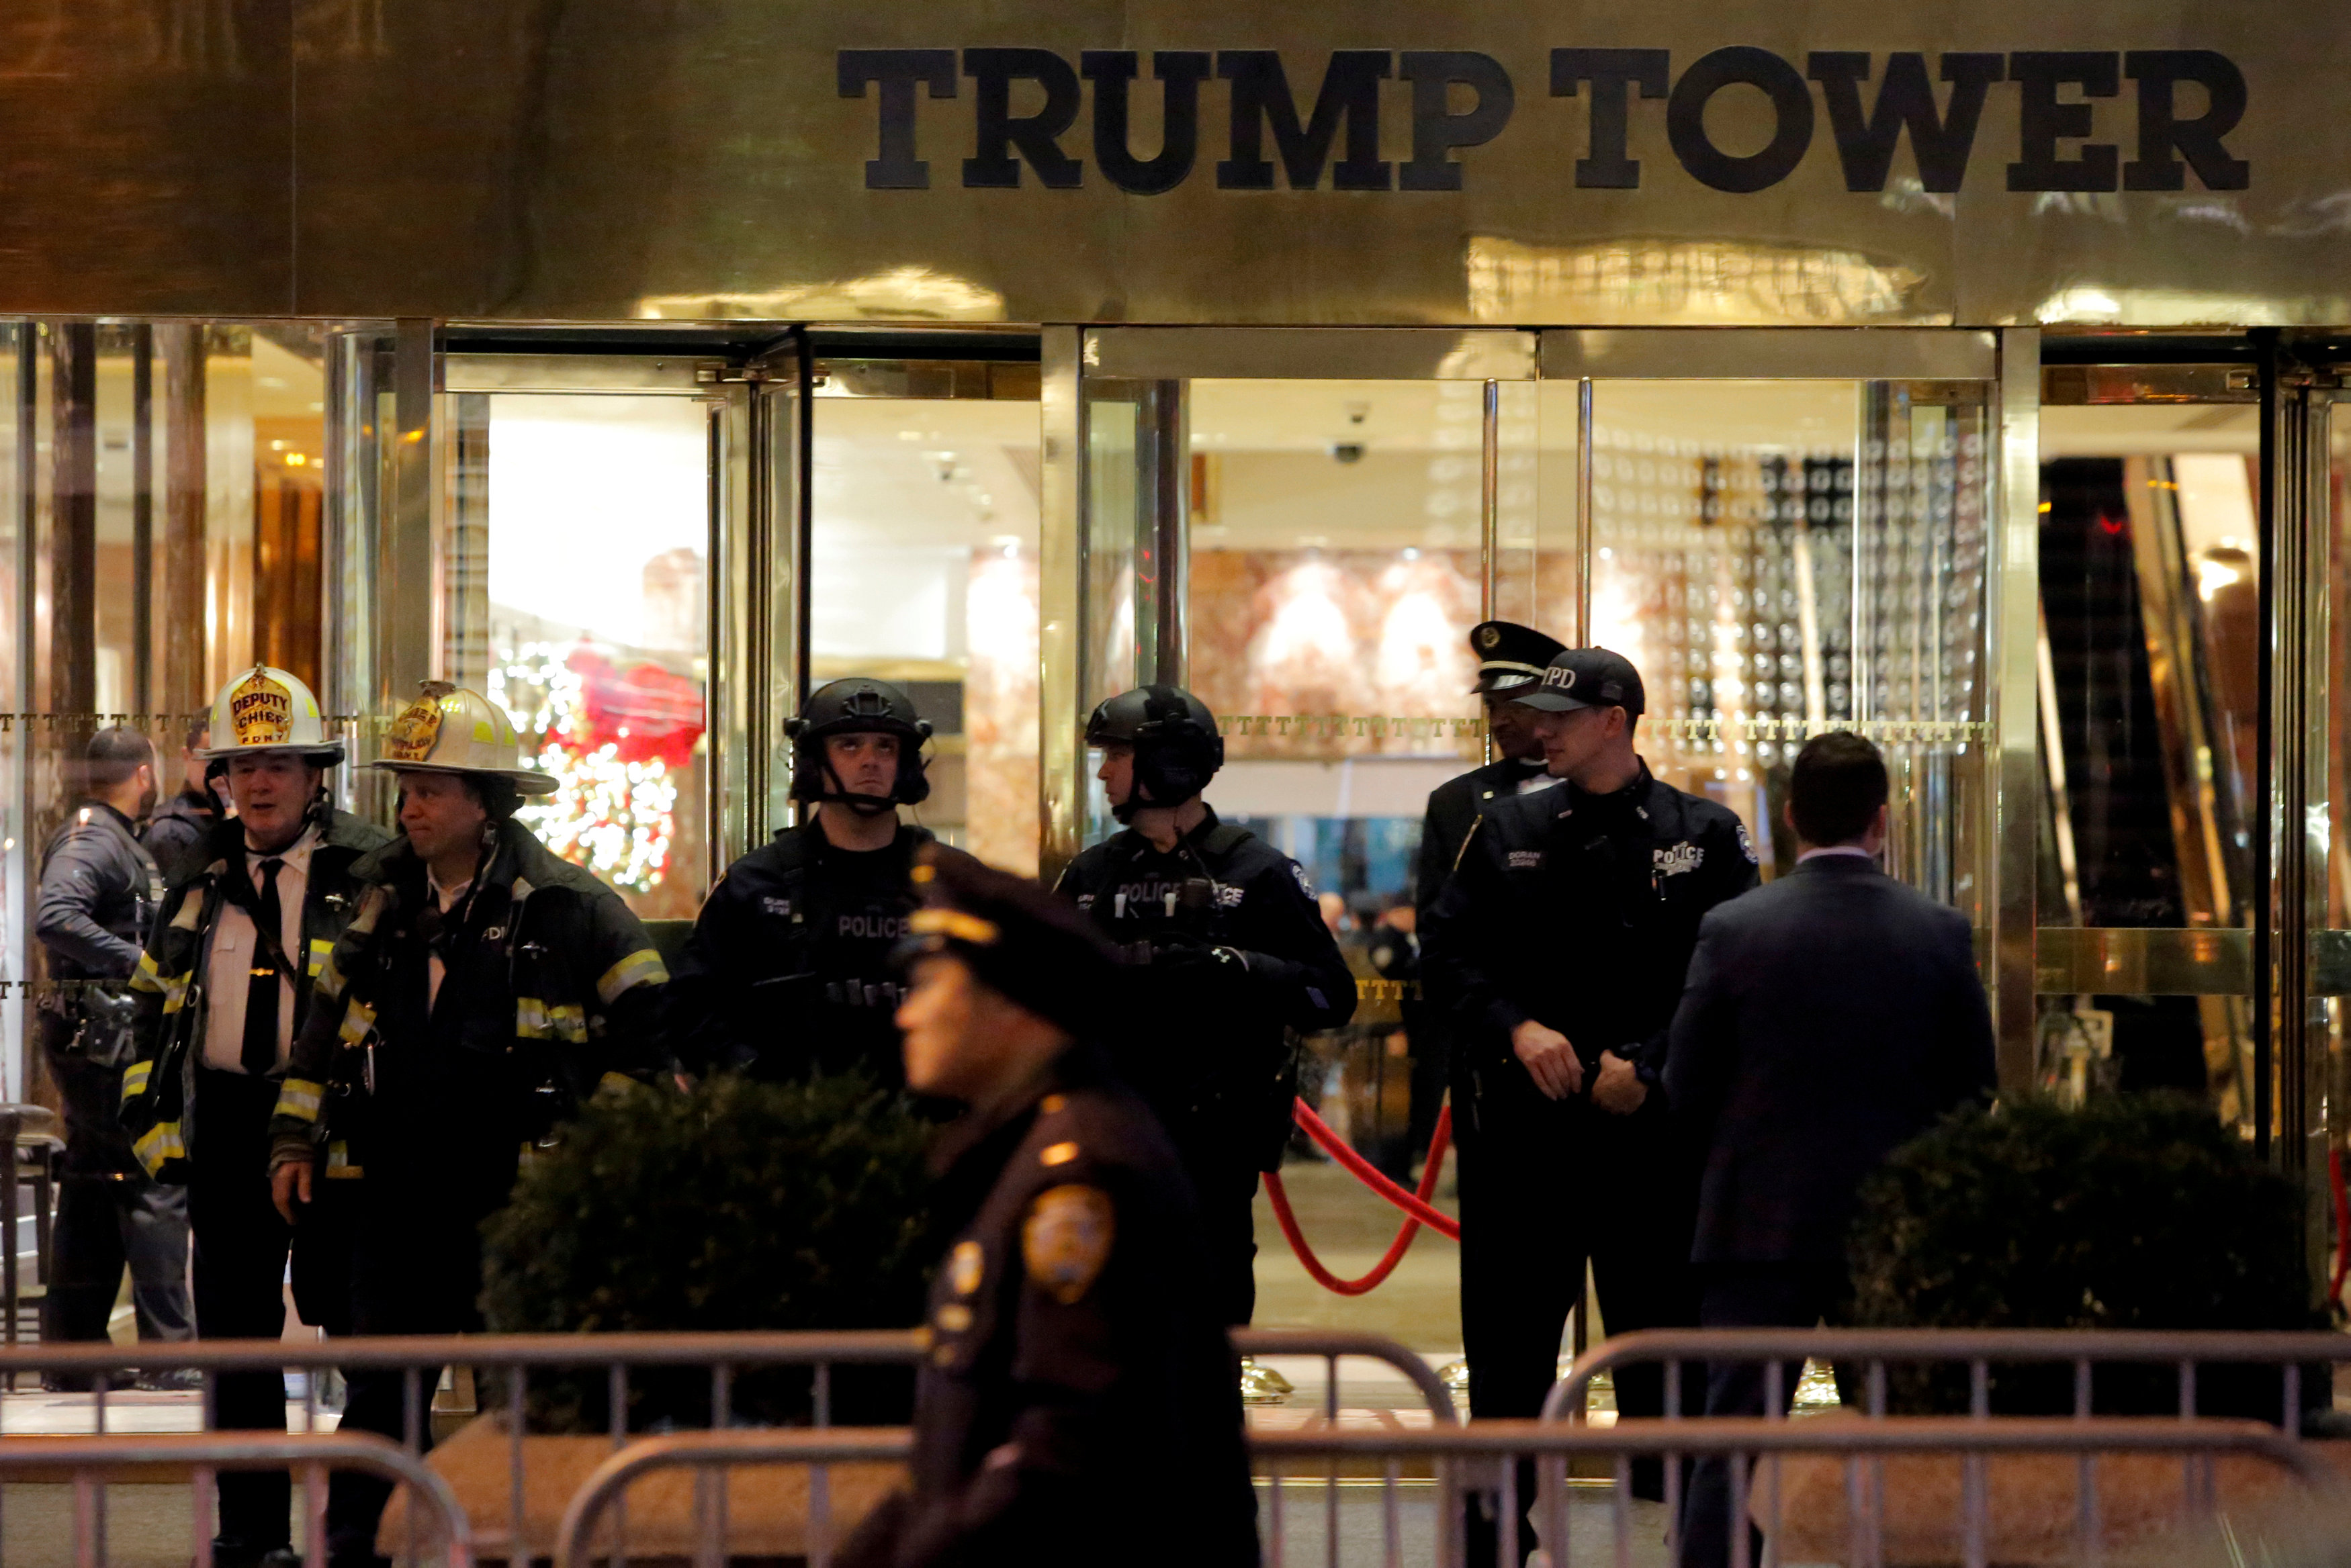 FILE PHOTO - Police and fire crew stand outside Trump Tower following a report of a suspicious package in Manhattan, New York City, U.S. on December 27, 2016. REUTERS/Andrew Kelly/File Photo